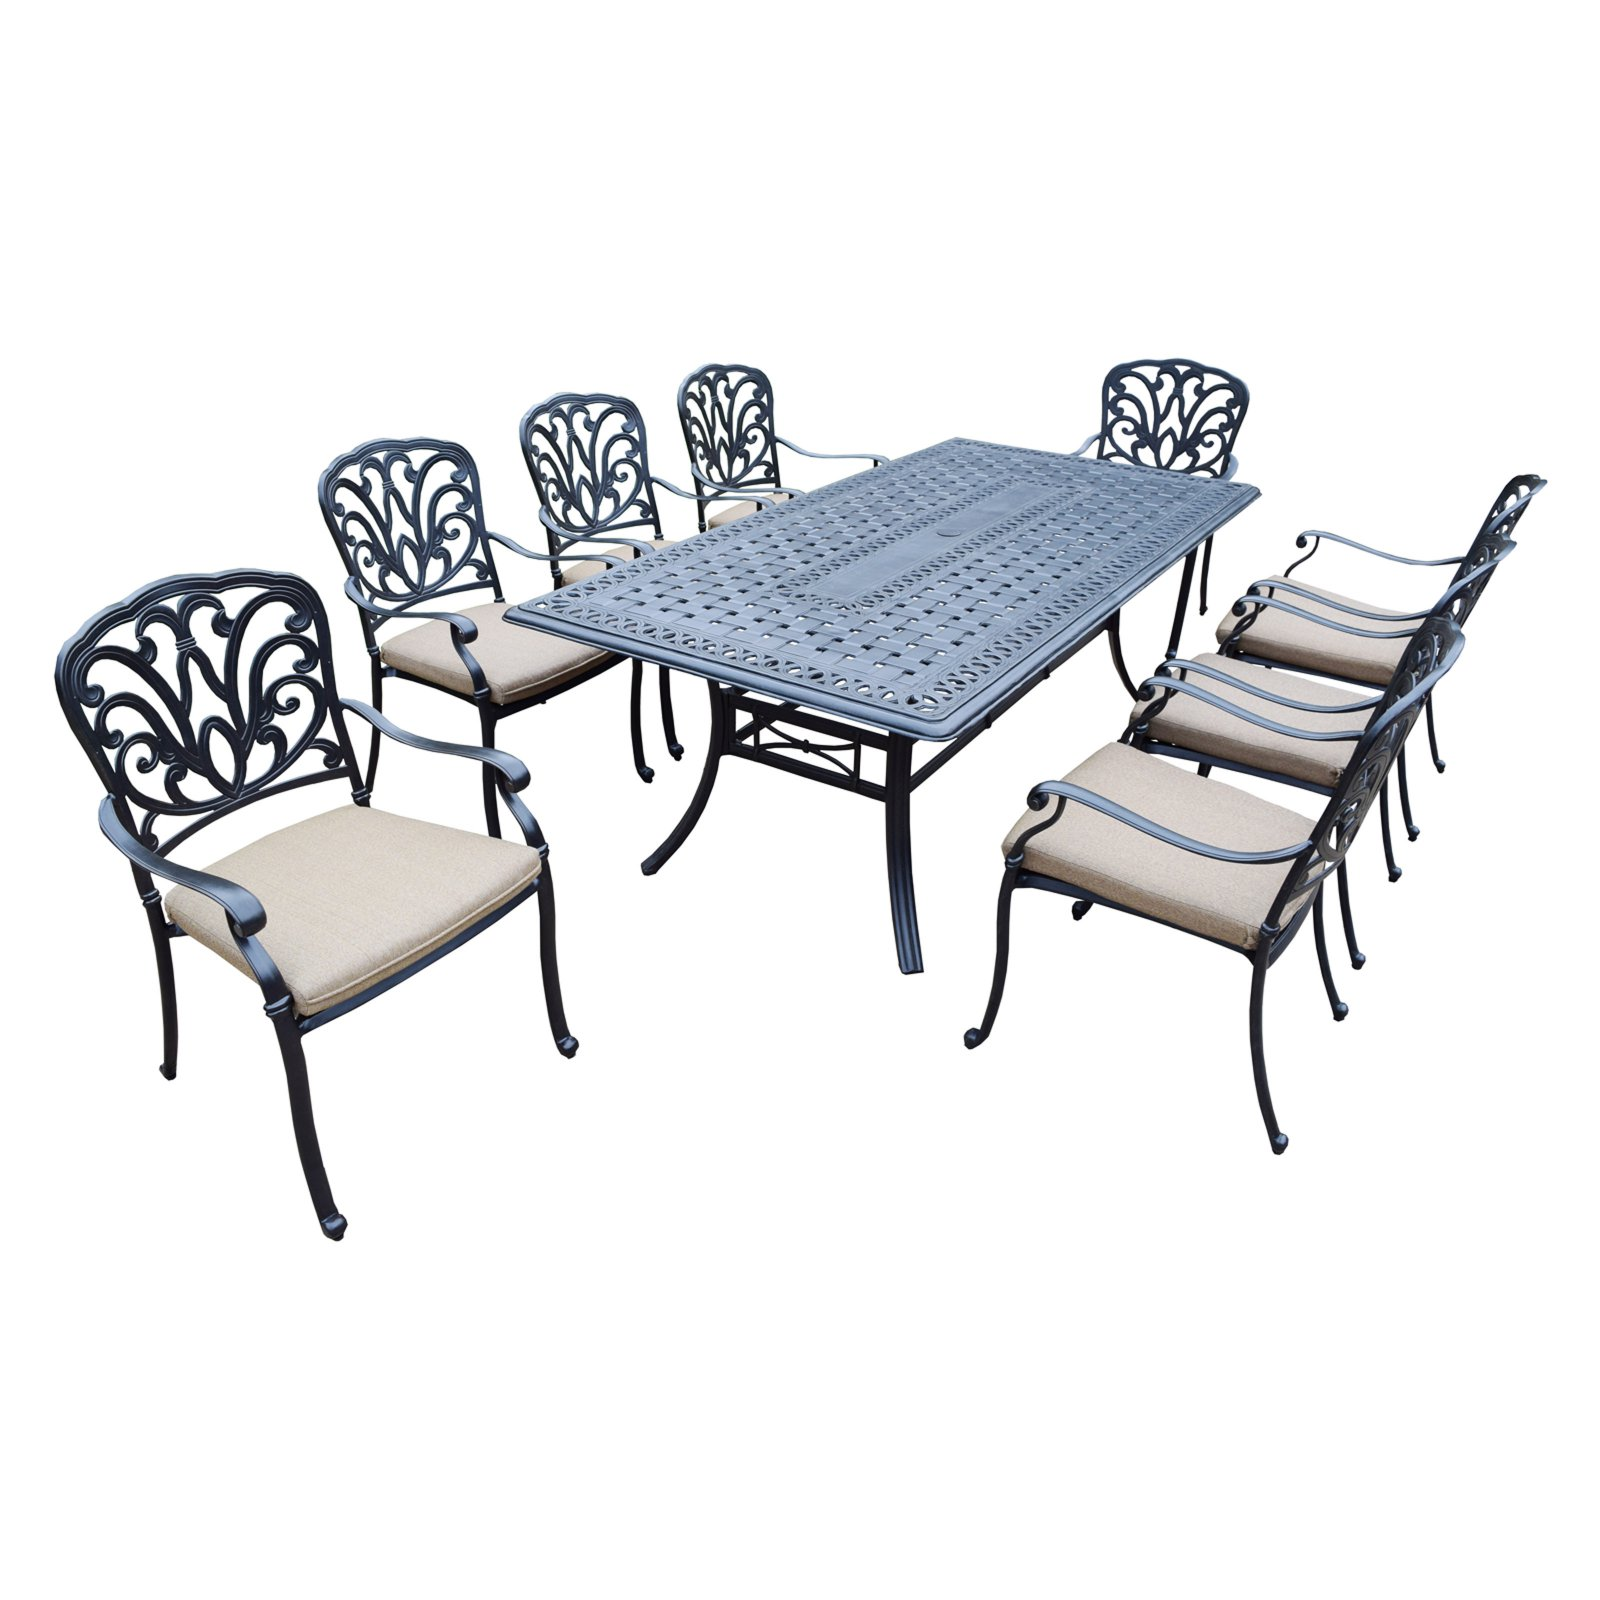 Oakland Living Hampton 9 Piece Rectangular Patio Dining Set with Stackable Chairs